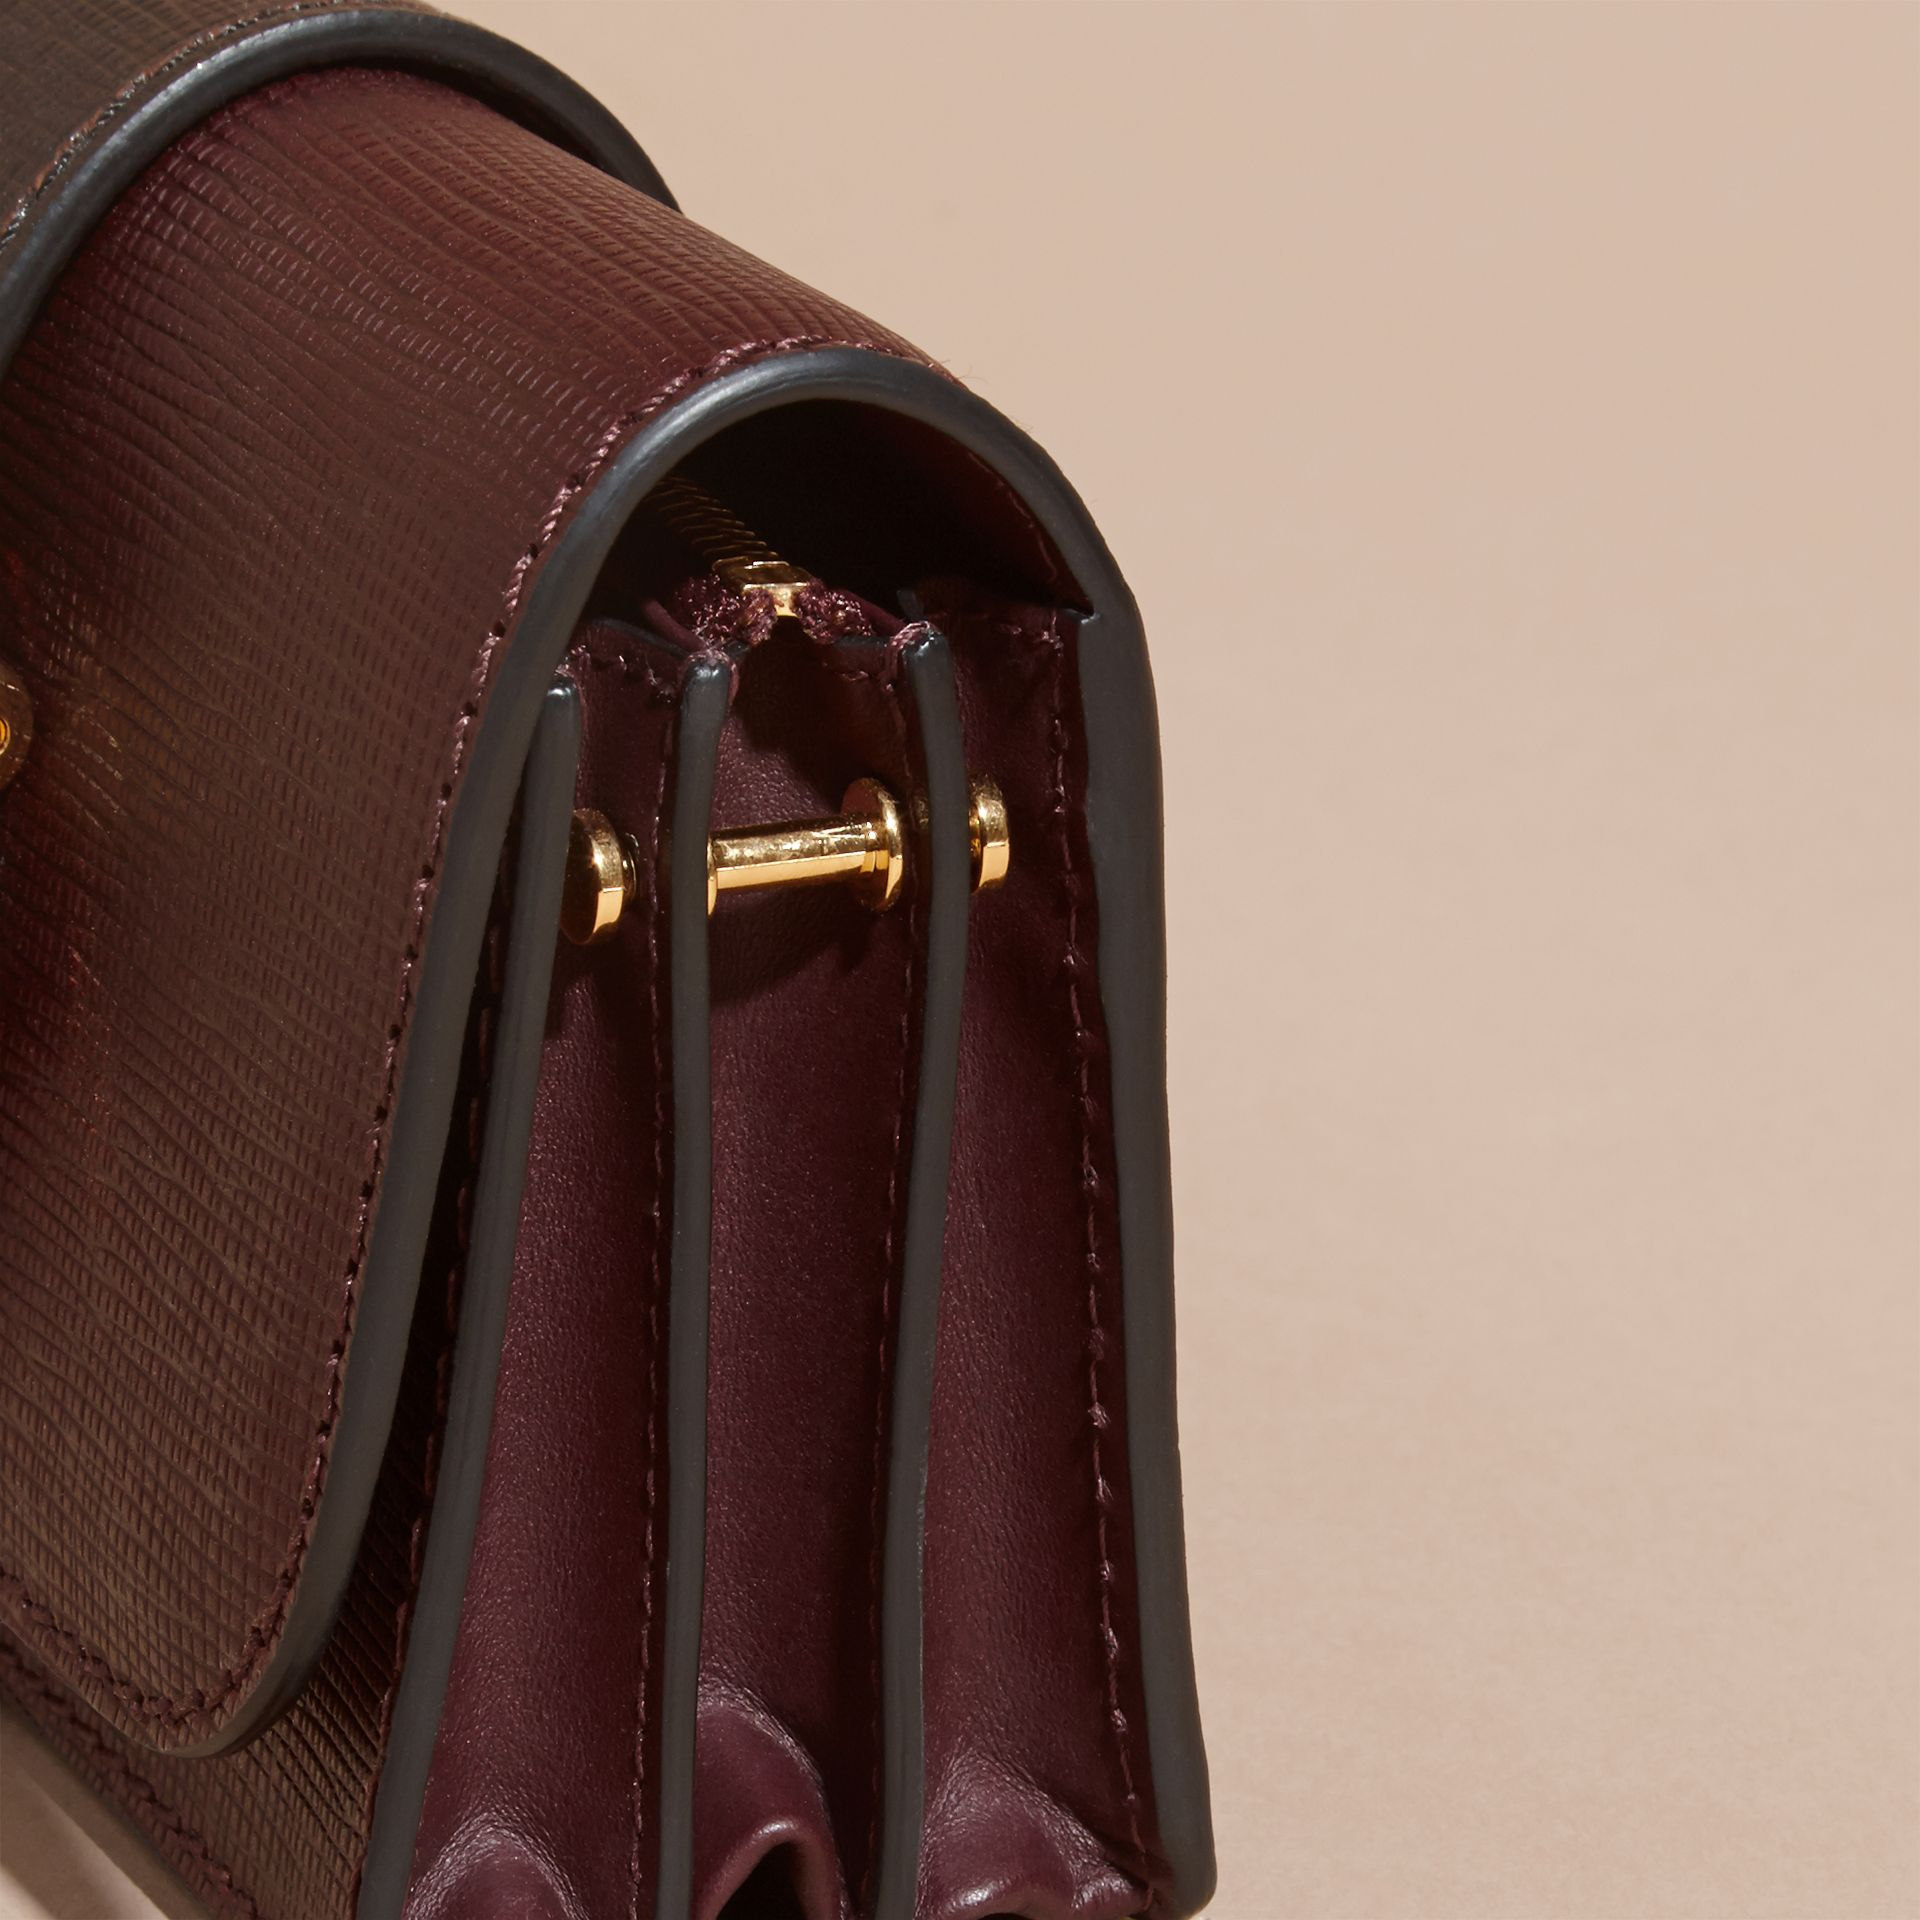 Burgundy/black The Small Buckle Bag in Textured Leather Burgundy/black - gallery image 7